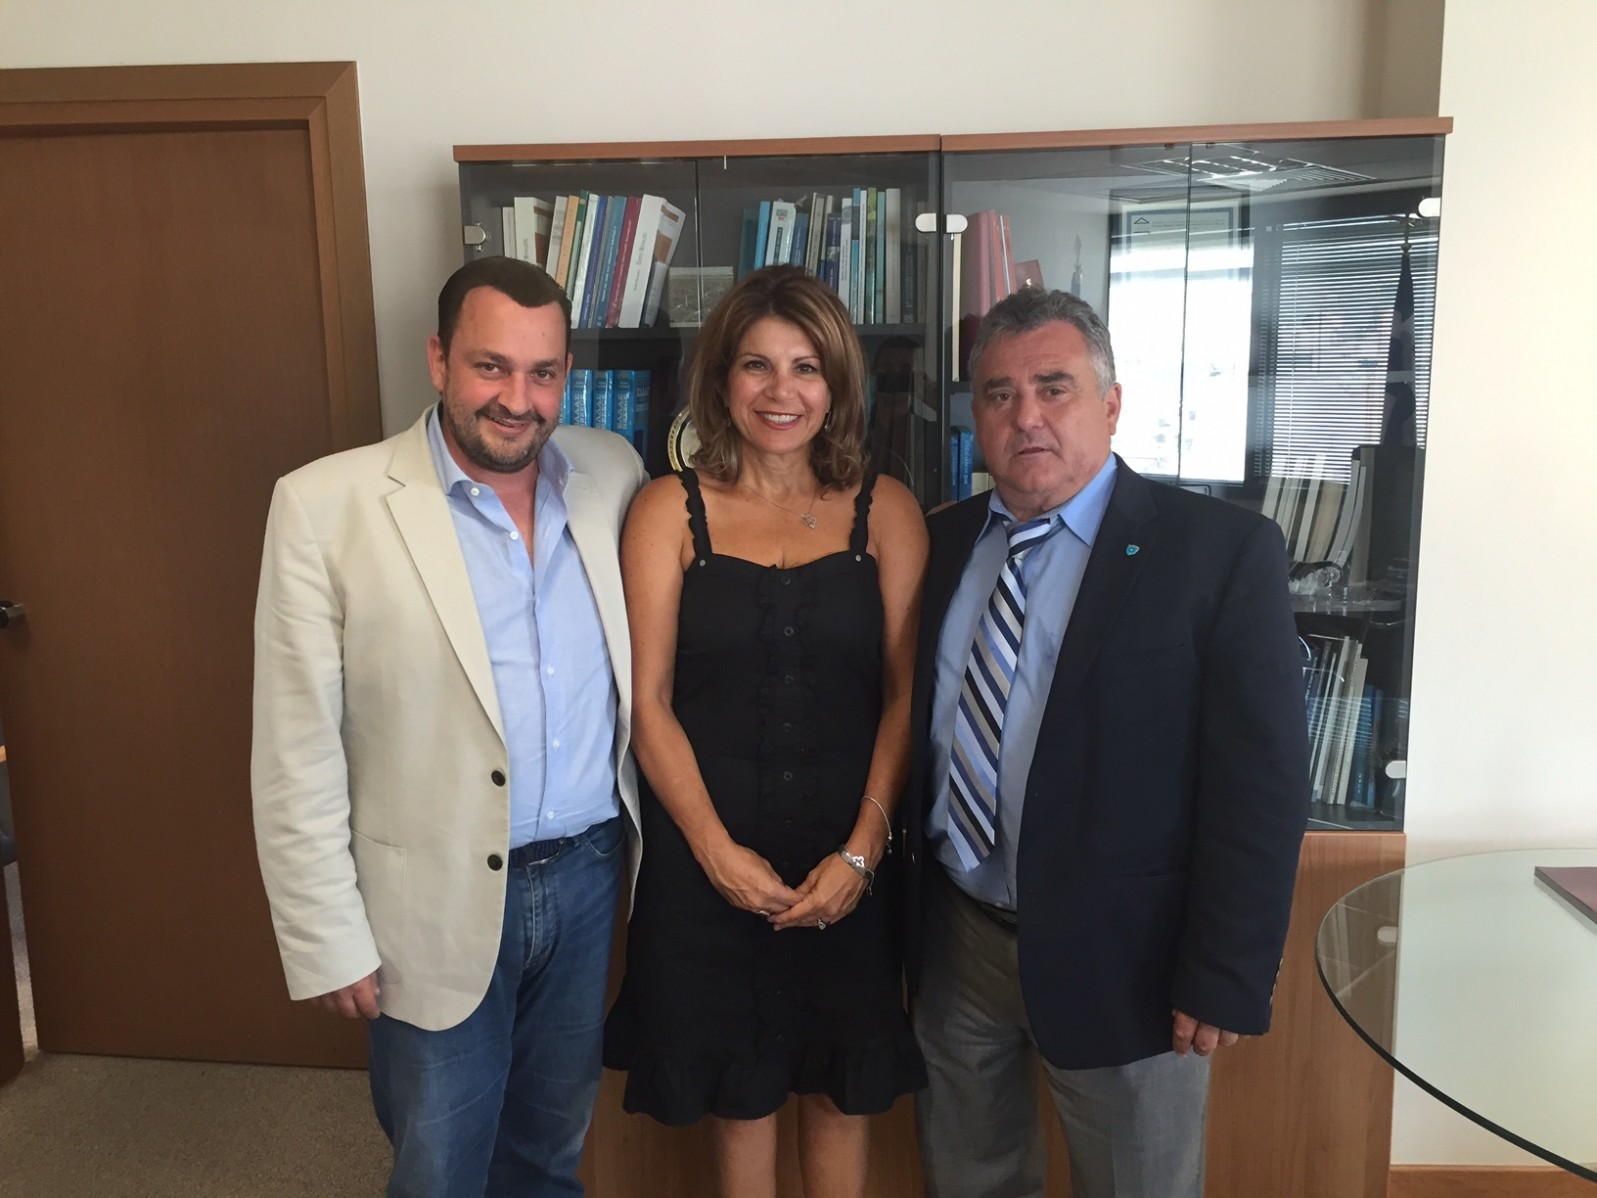 Bill Mataragas, president of HANC met with the Secretary General of the Greeks Abroad Mr. Kokkinos